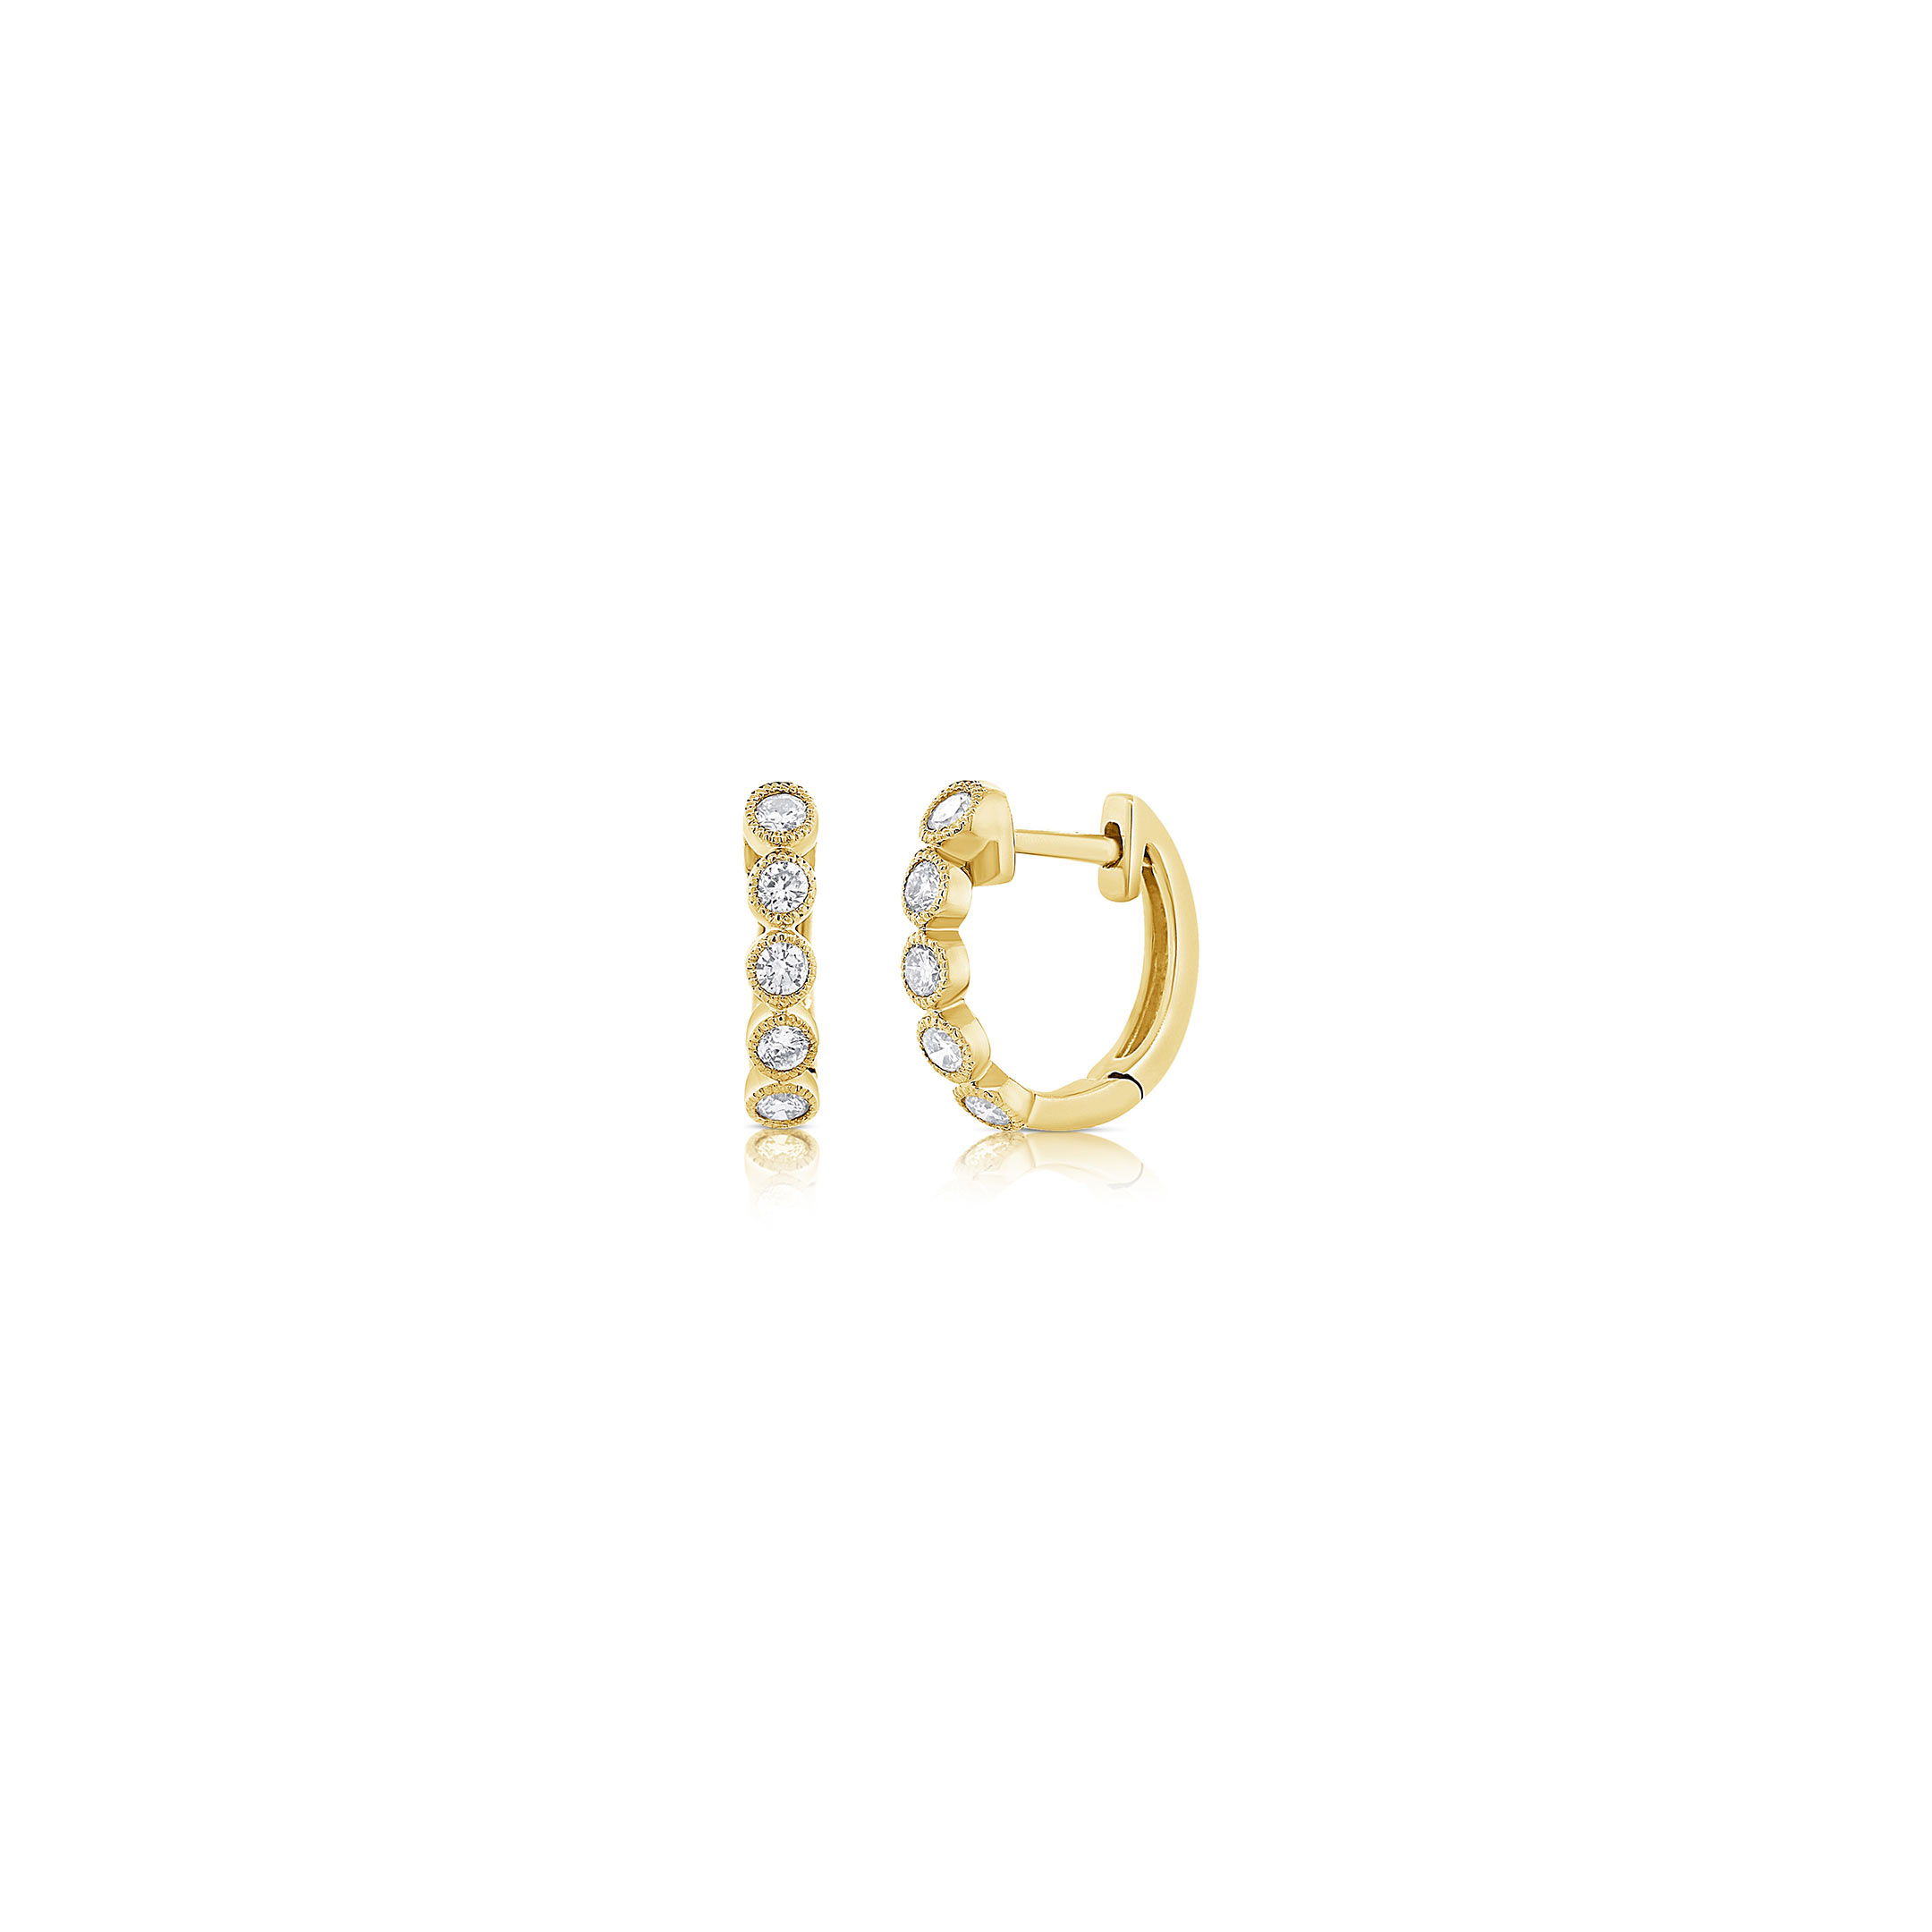 Huggie Earrings - 14k Yellow & 5 Round Diamonds